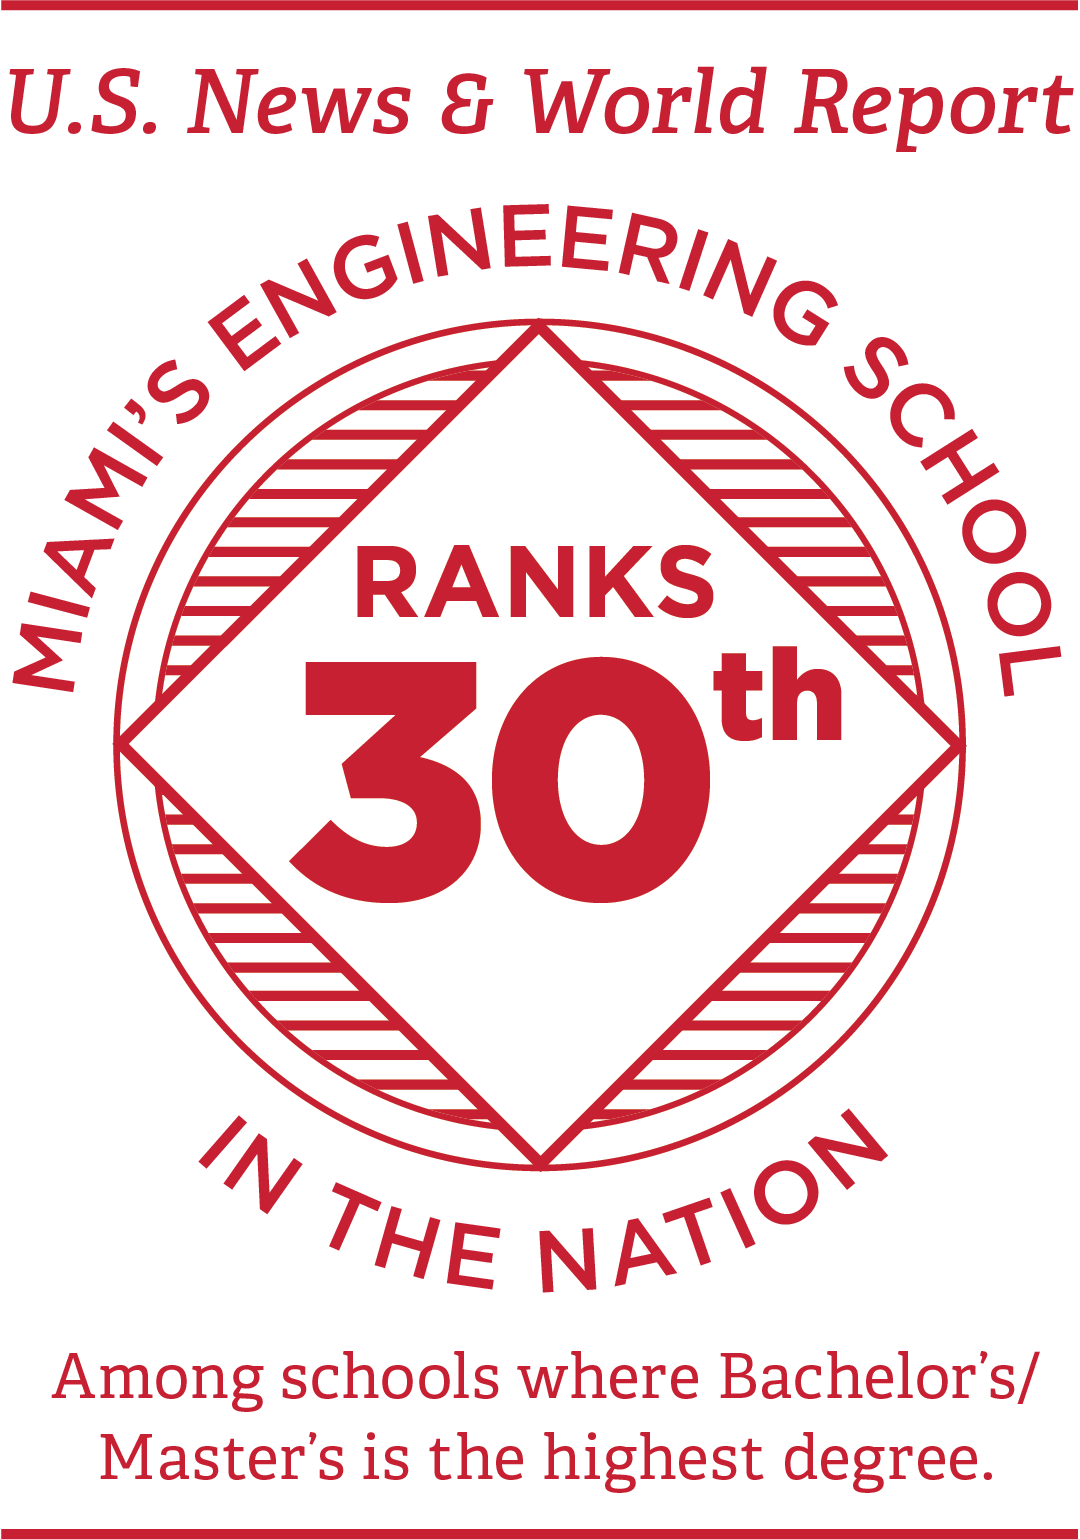 U.S News and World Report ranks Miami's engineering school 30th in the nation among schools where Bachelor's and Master's is the highest degree